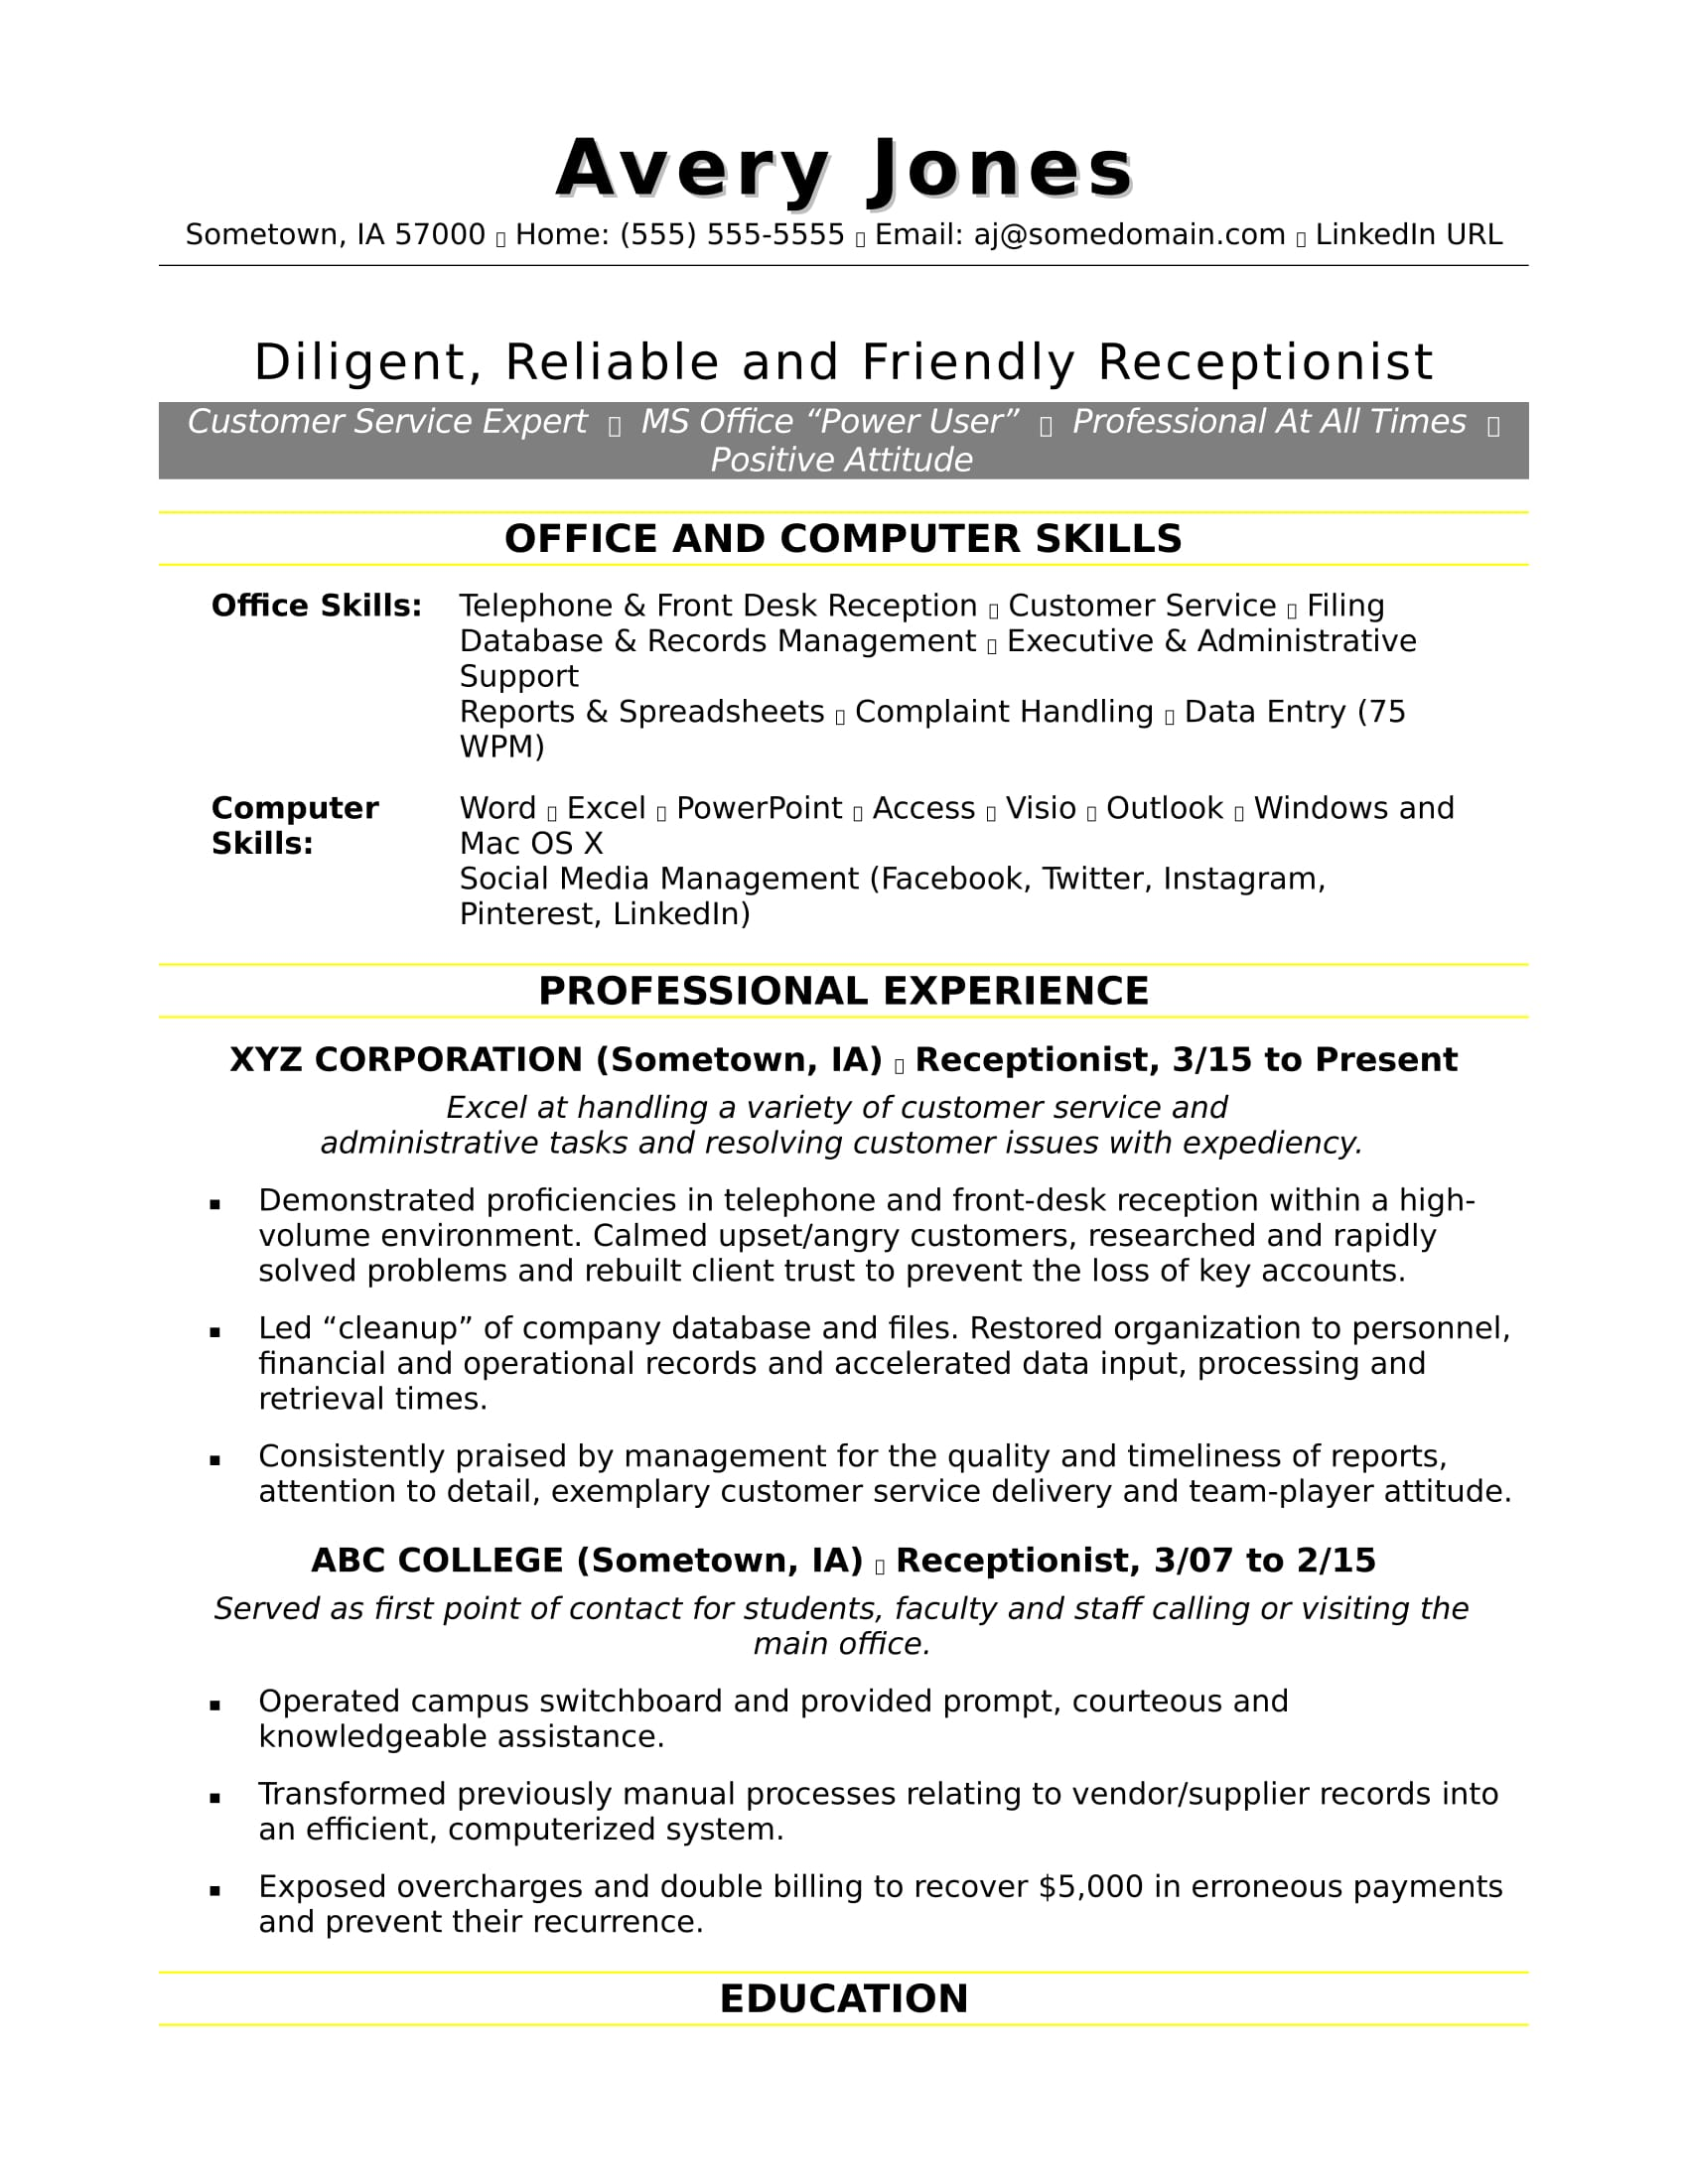 receptionist resume sample monster front desk job maintenance skills work supply chain Resume Front Desk Job Resume